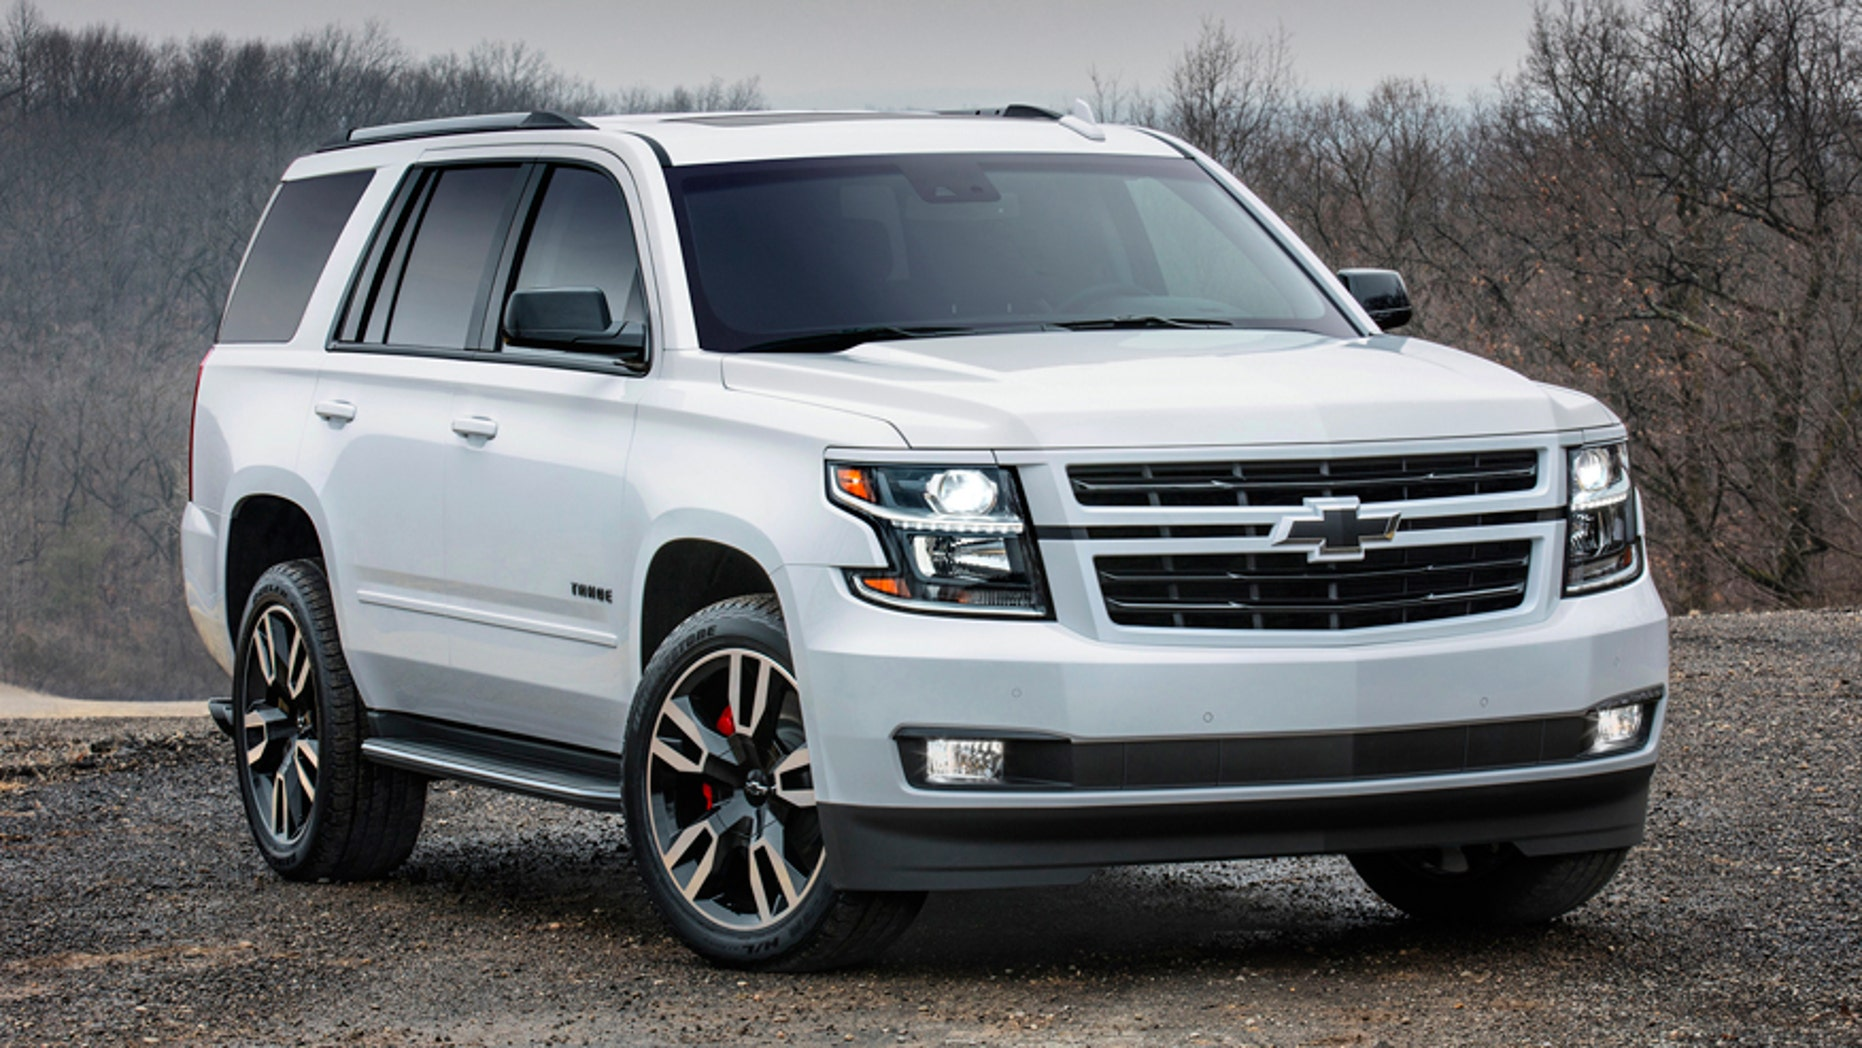 The 2018 Tahoe Rst Is Muscle Car Of Chevy Suvs